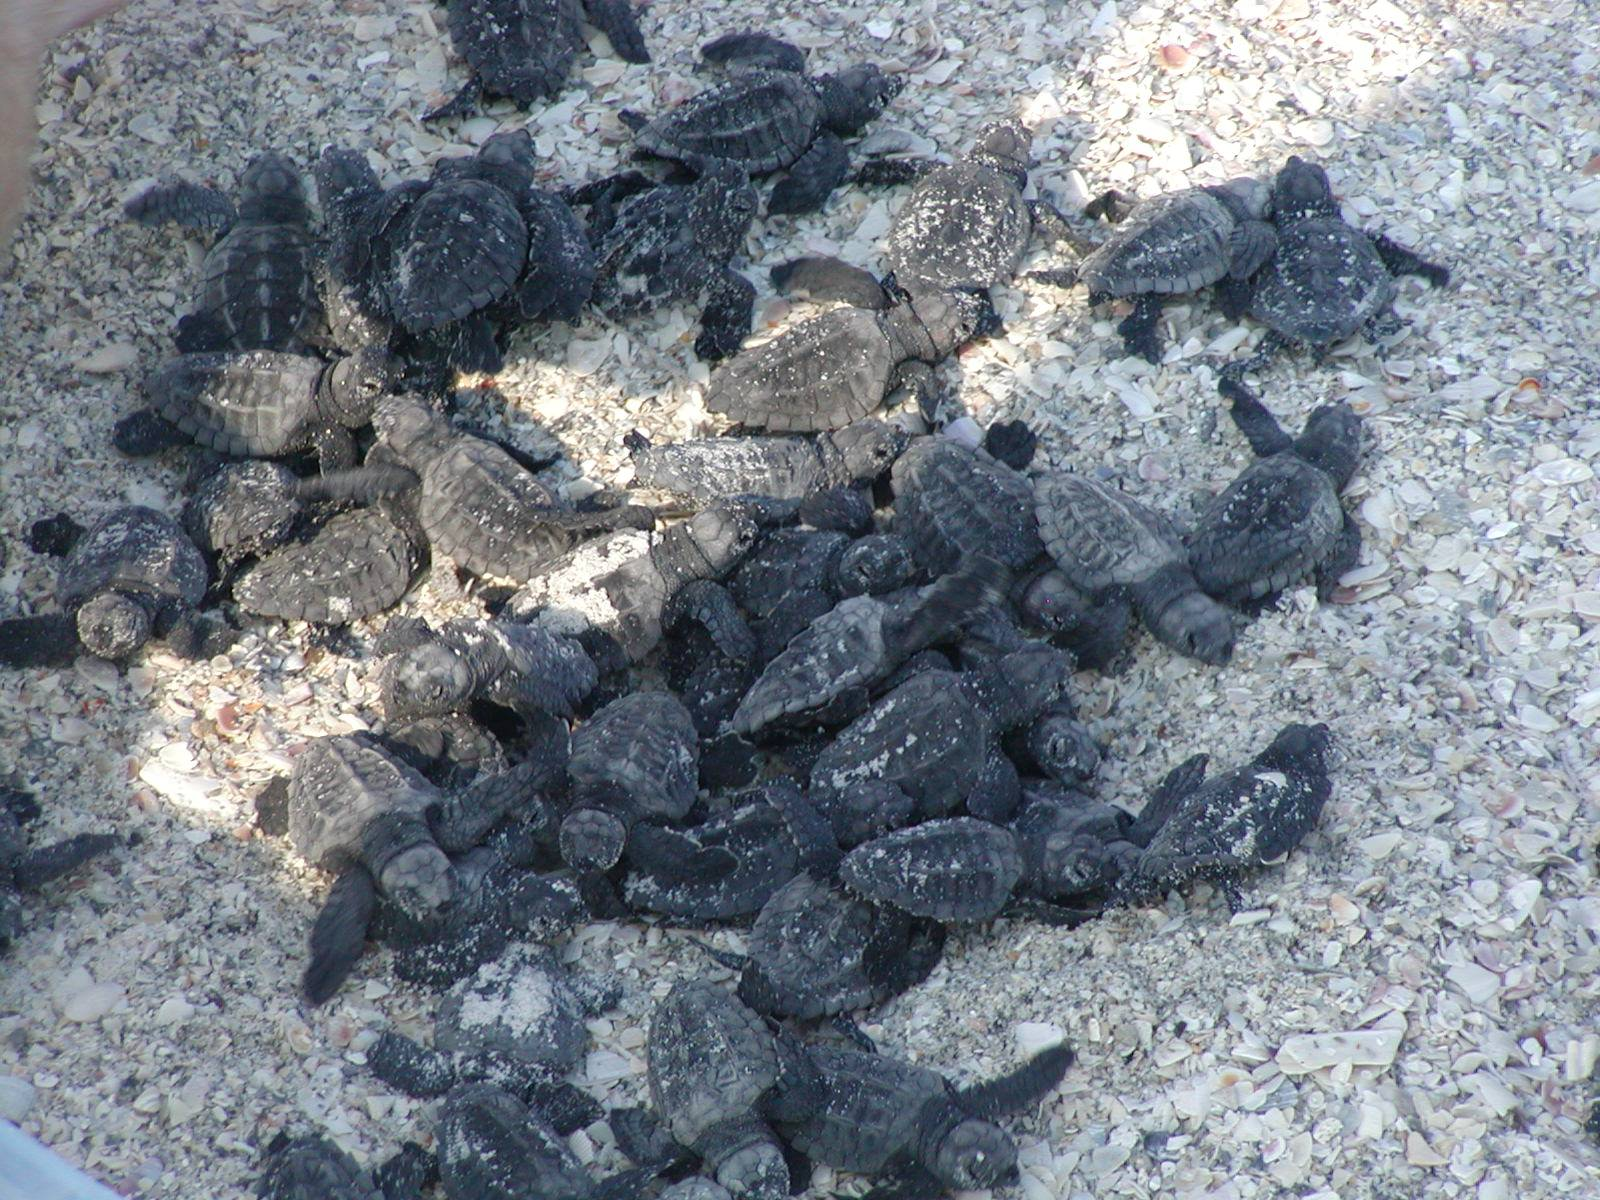 kemps ridley sea turtle hatchlings